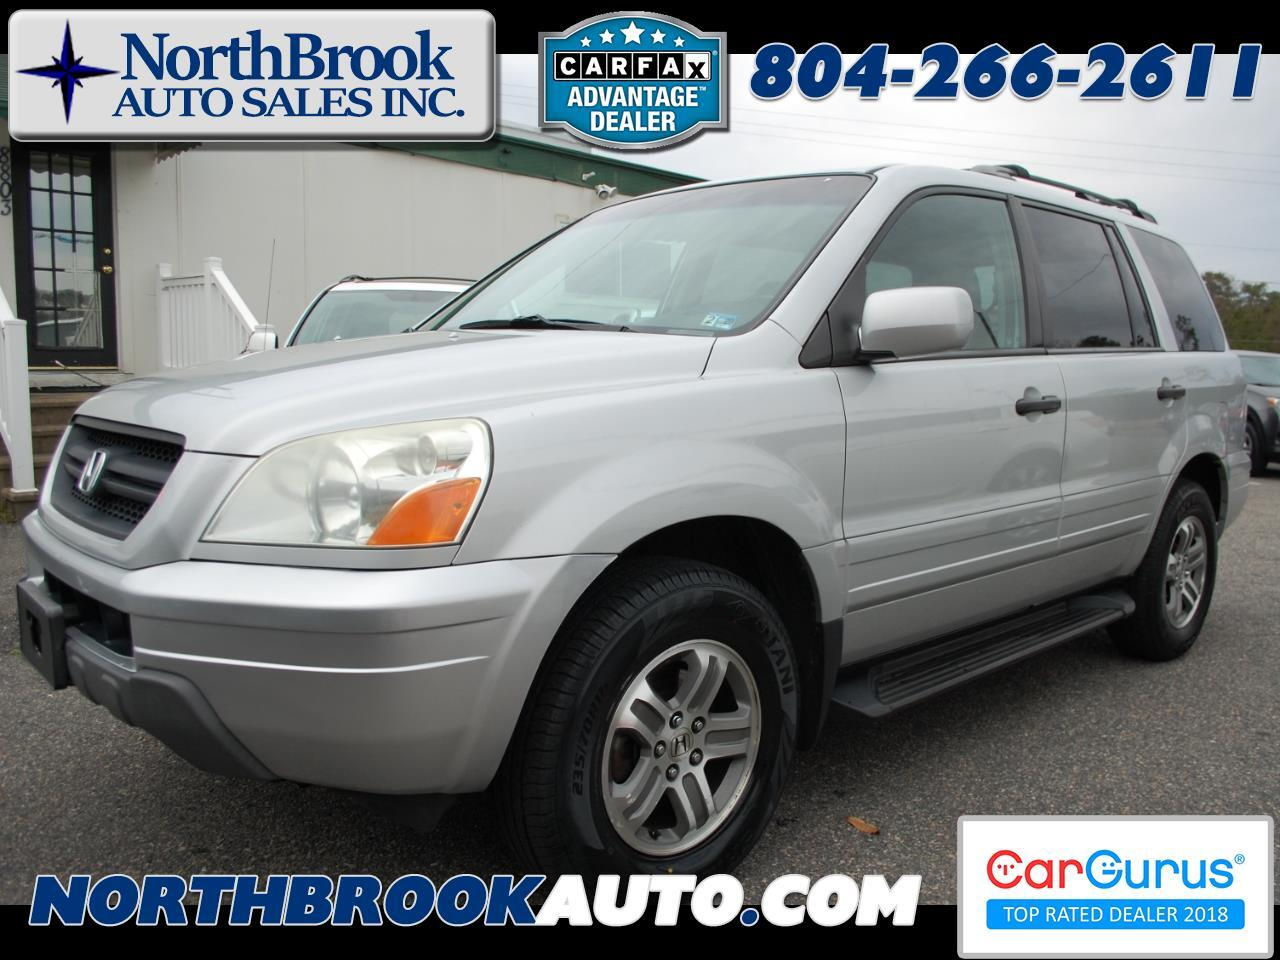 2004 Honda Pilot 4WD EX Auto w/Leather